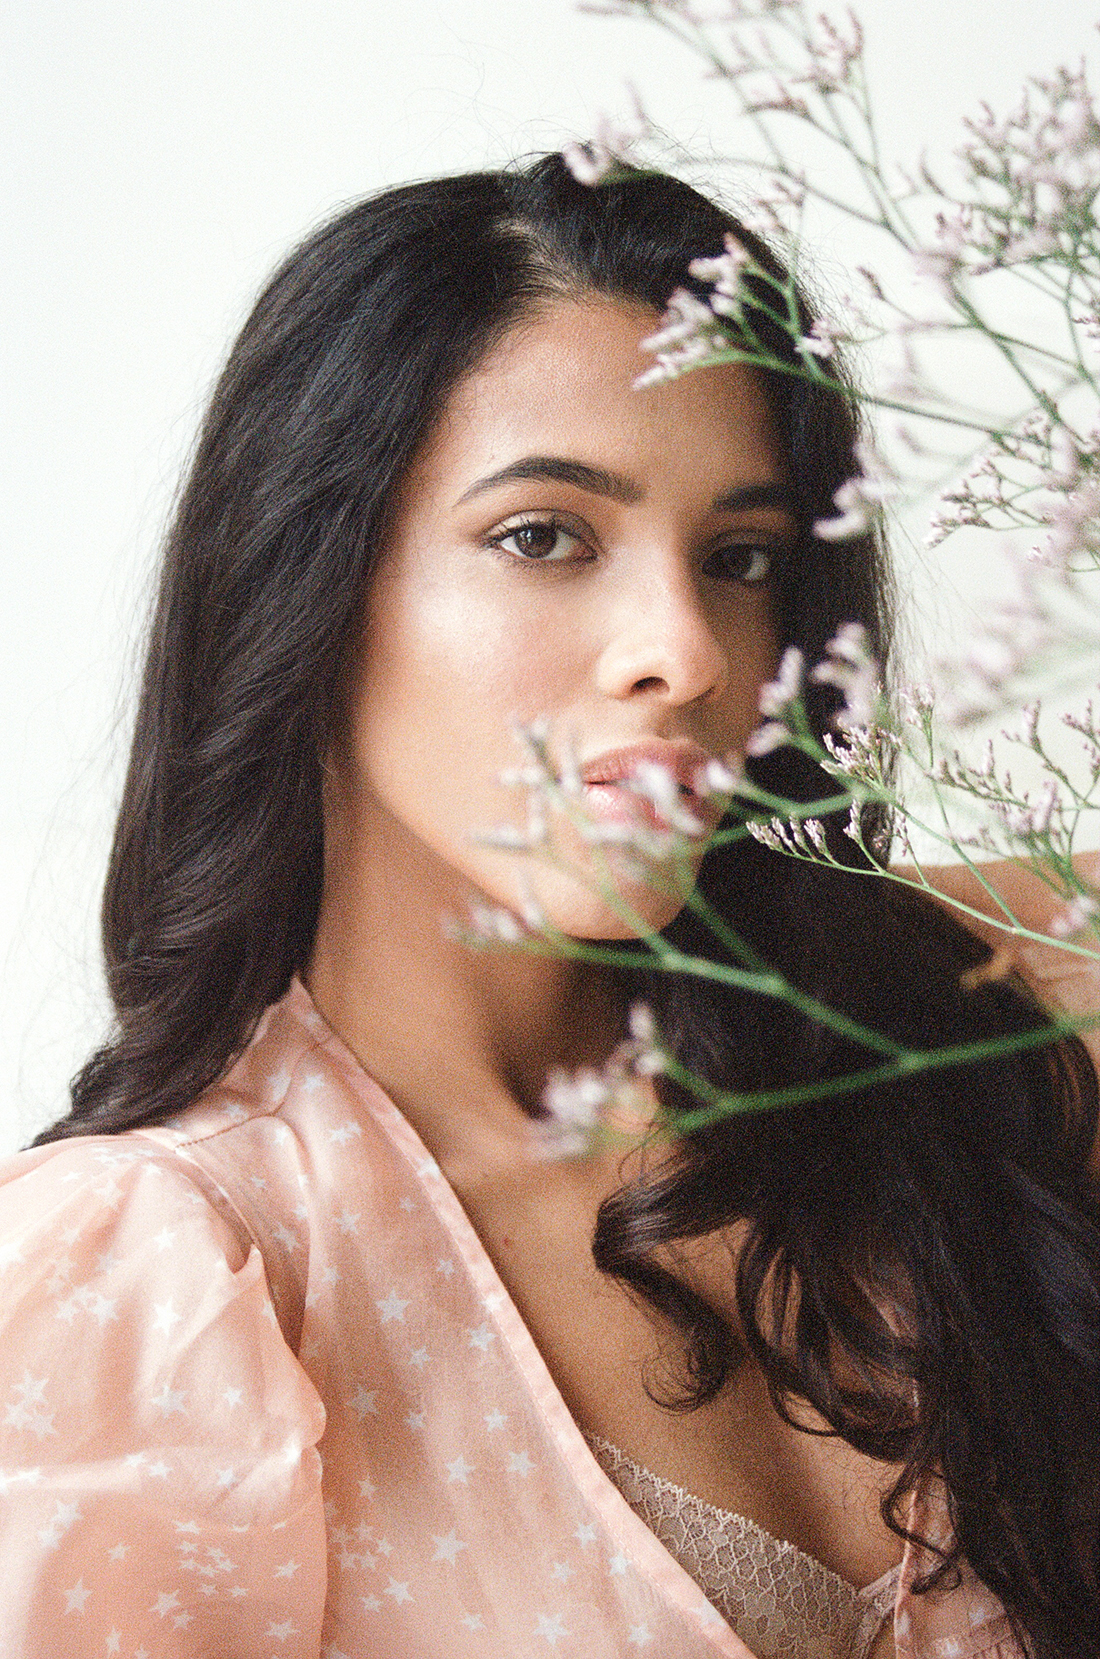 35mm film model portrait with flowers - Beatriz @ PRM by London photographer Ailera Stone